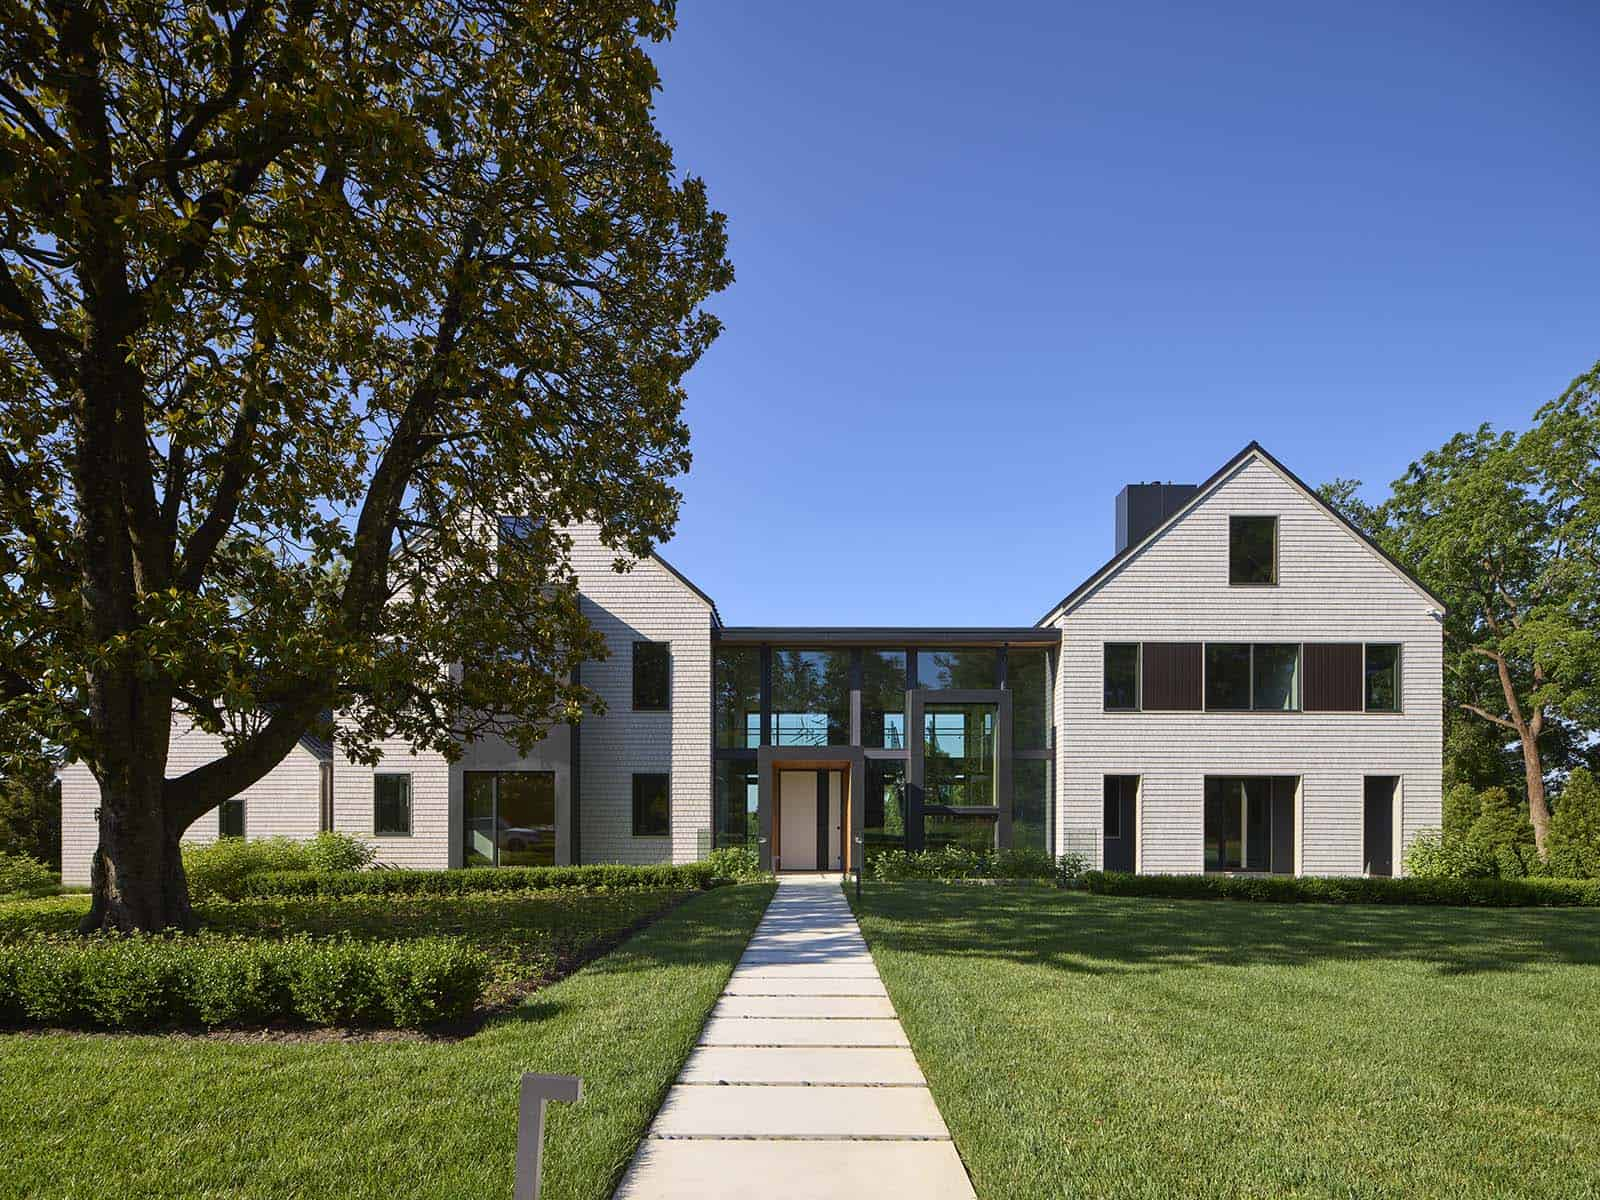 Two gabled pavilions make up this family dream home in New Jersey